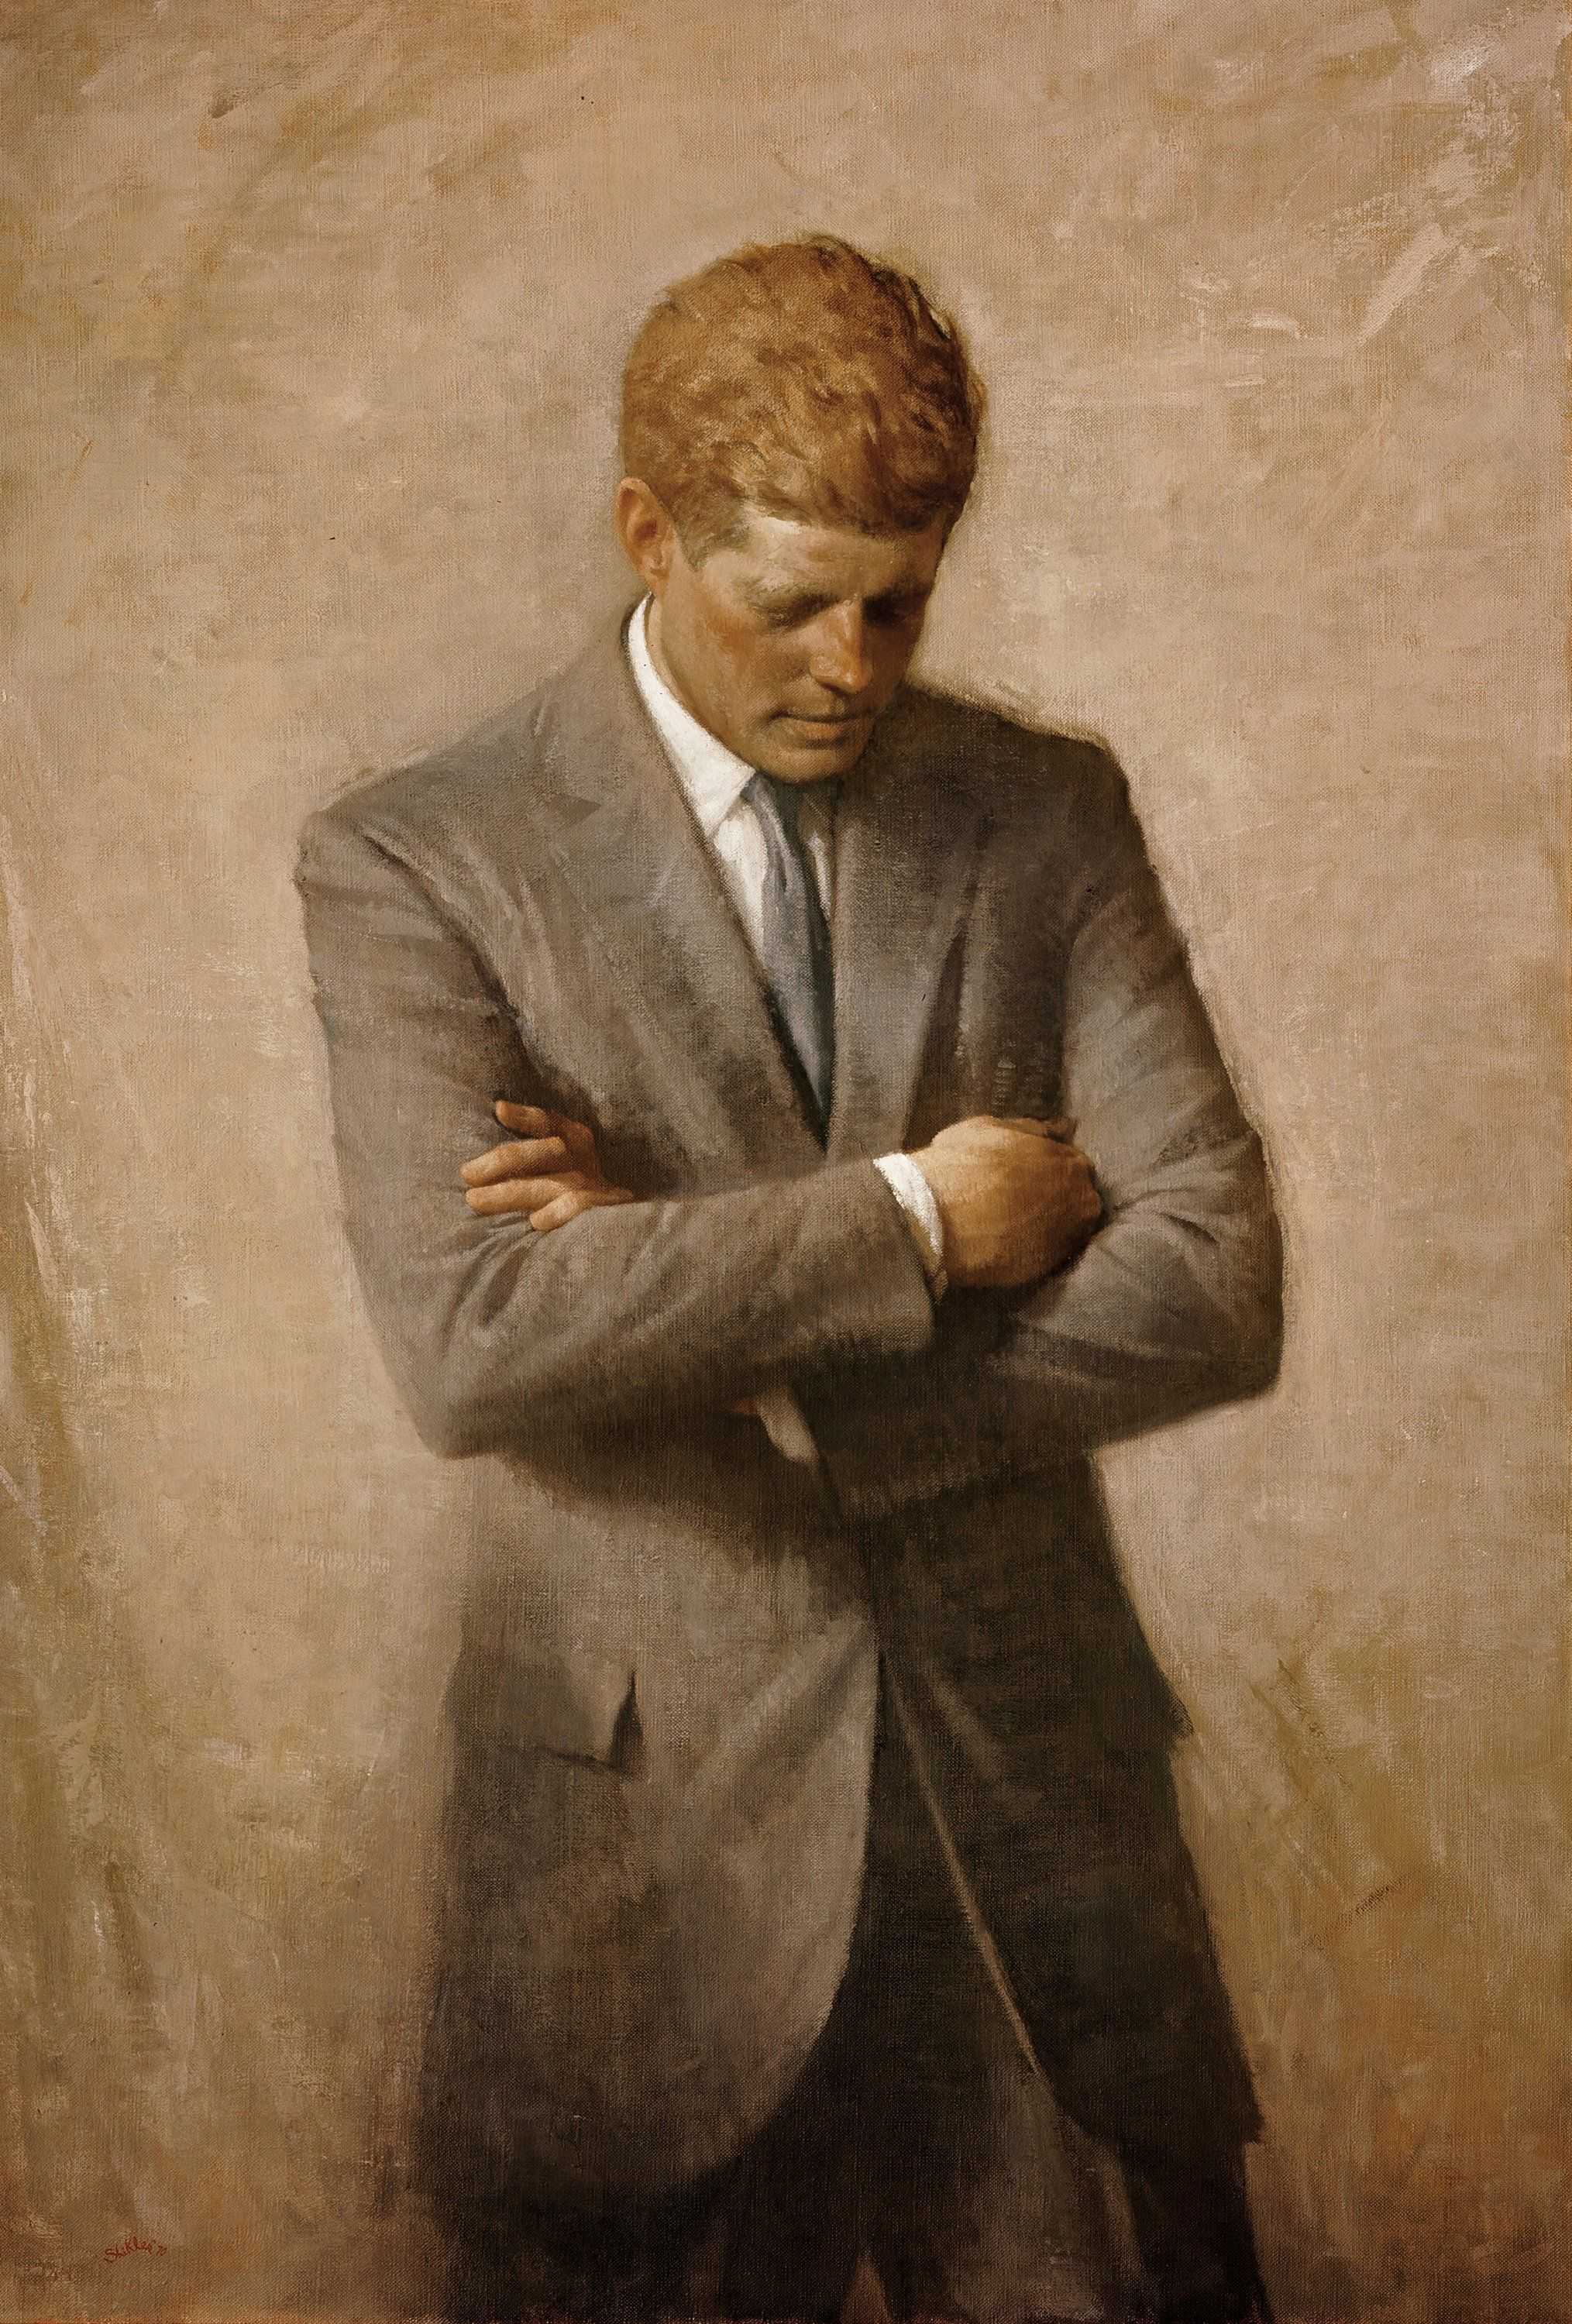 Jfk S Official White House Portrait The Story Of Aaron Shikler Posthumous Painting John F Kennedy